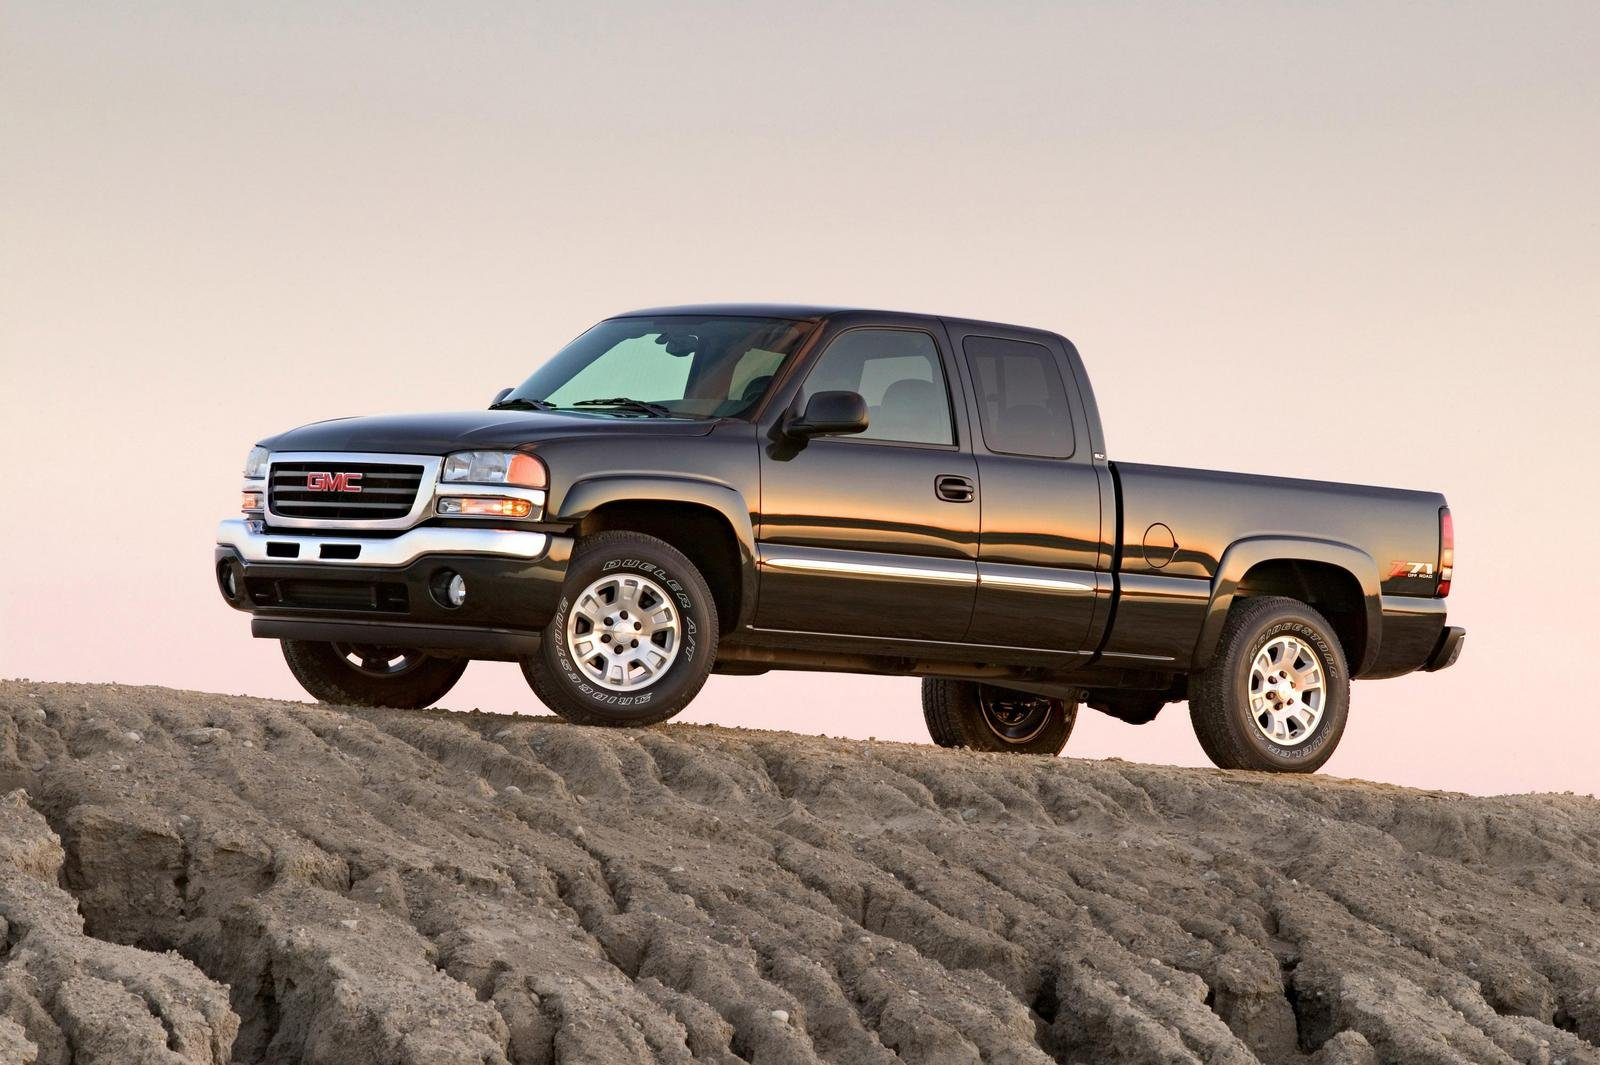 2007 GMC Sierra Classic Review - Top Speed